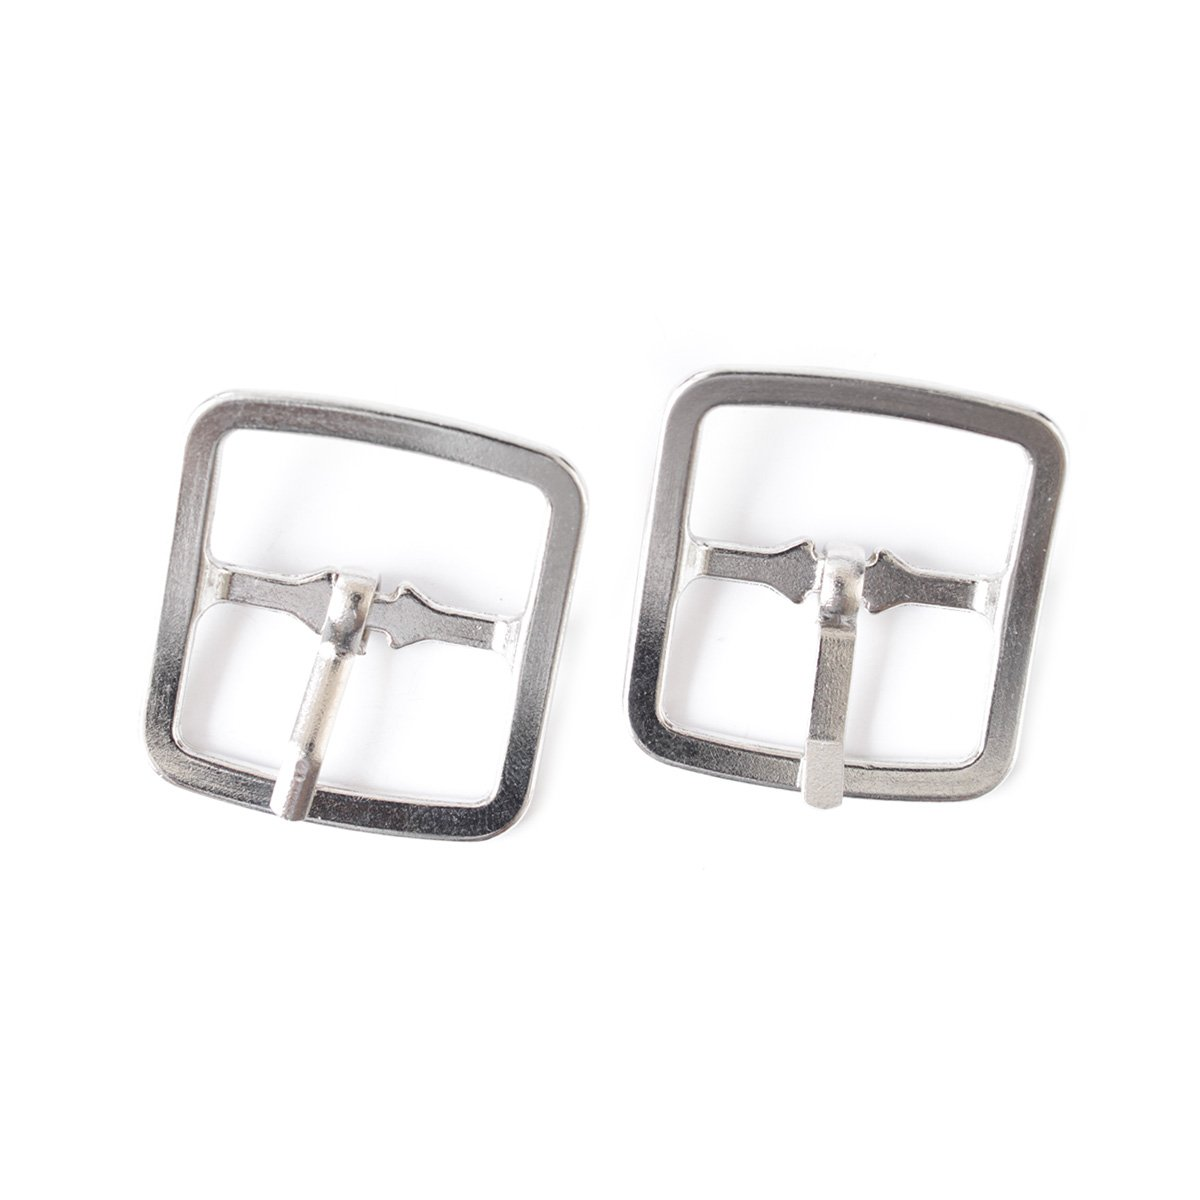 2 Pieces of 25mm Silver Roller Belt Square Buckles Metal For Art Sewing Craft Clothing Denim Shoes By Wedding Decor